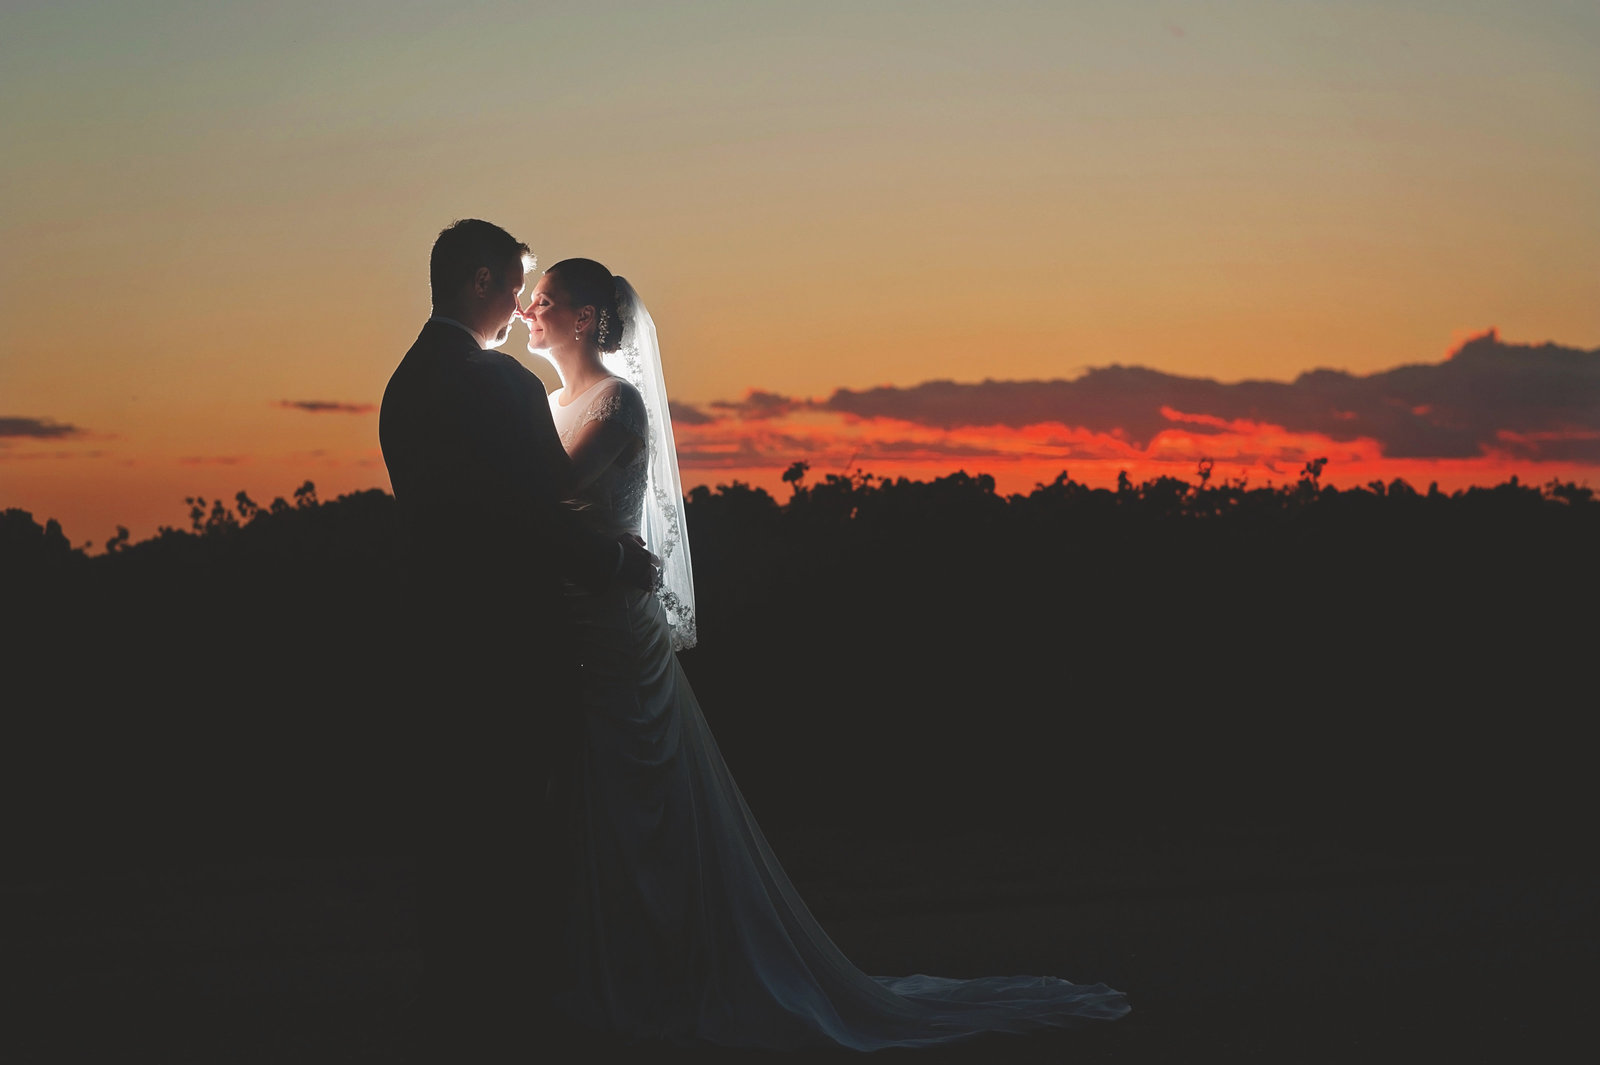 old sugar mill bride and groom  at sunset